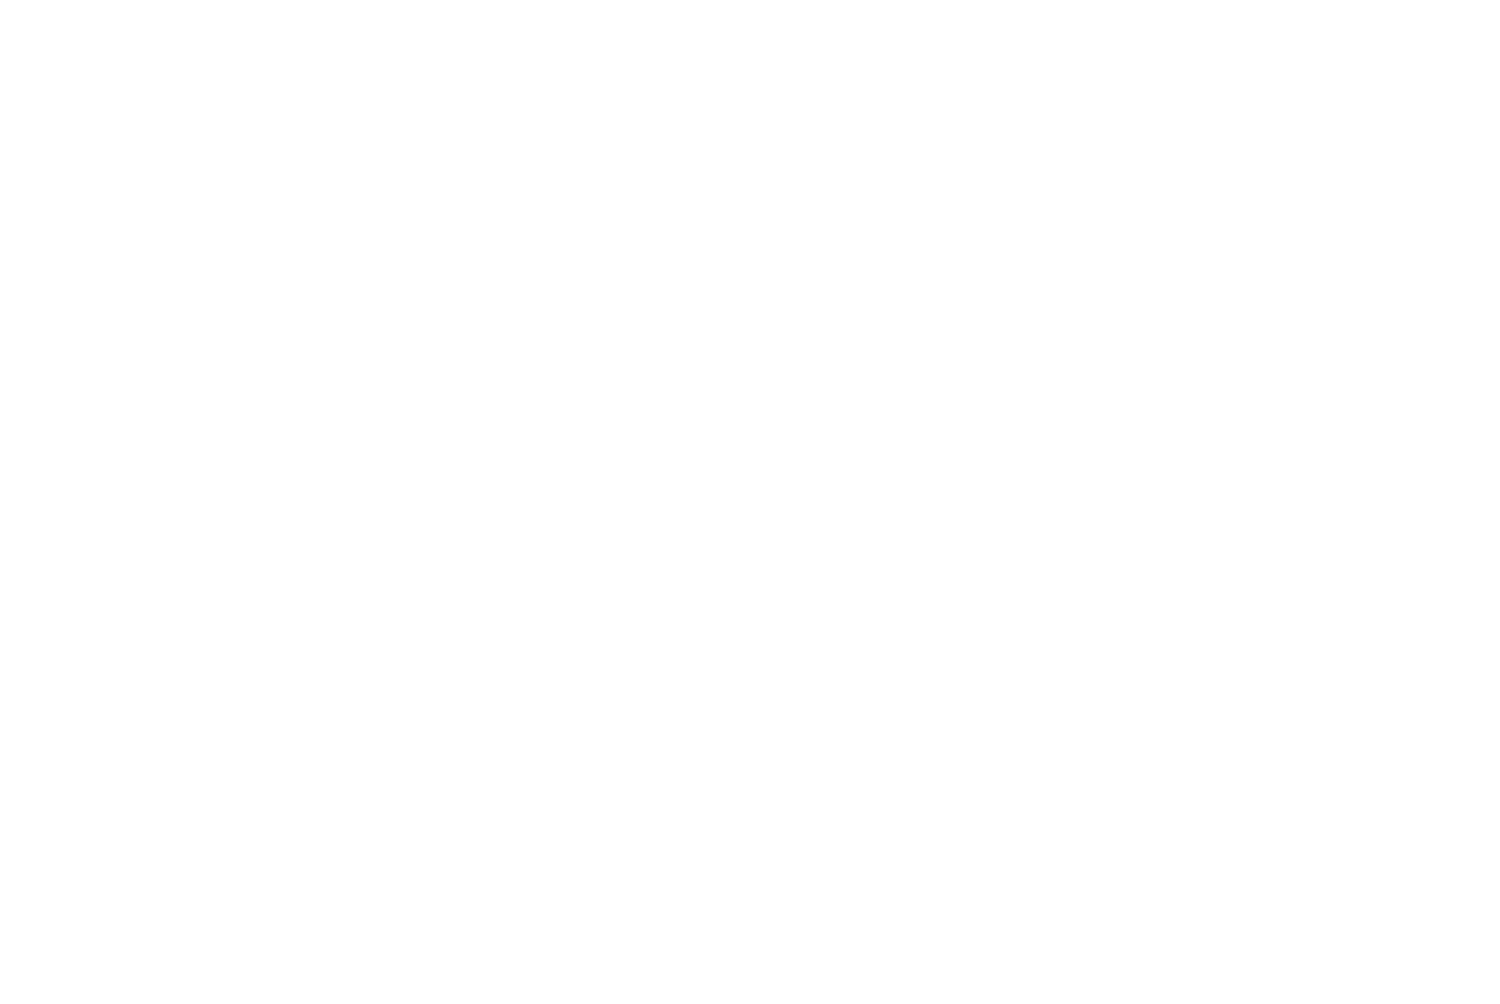 THE CLIMB - by Joshua Jordison